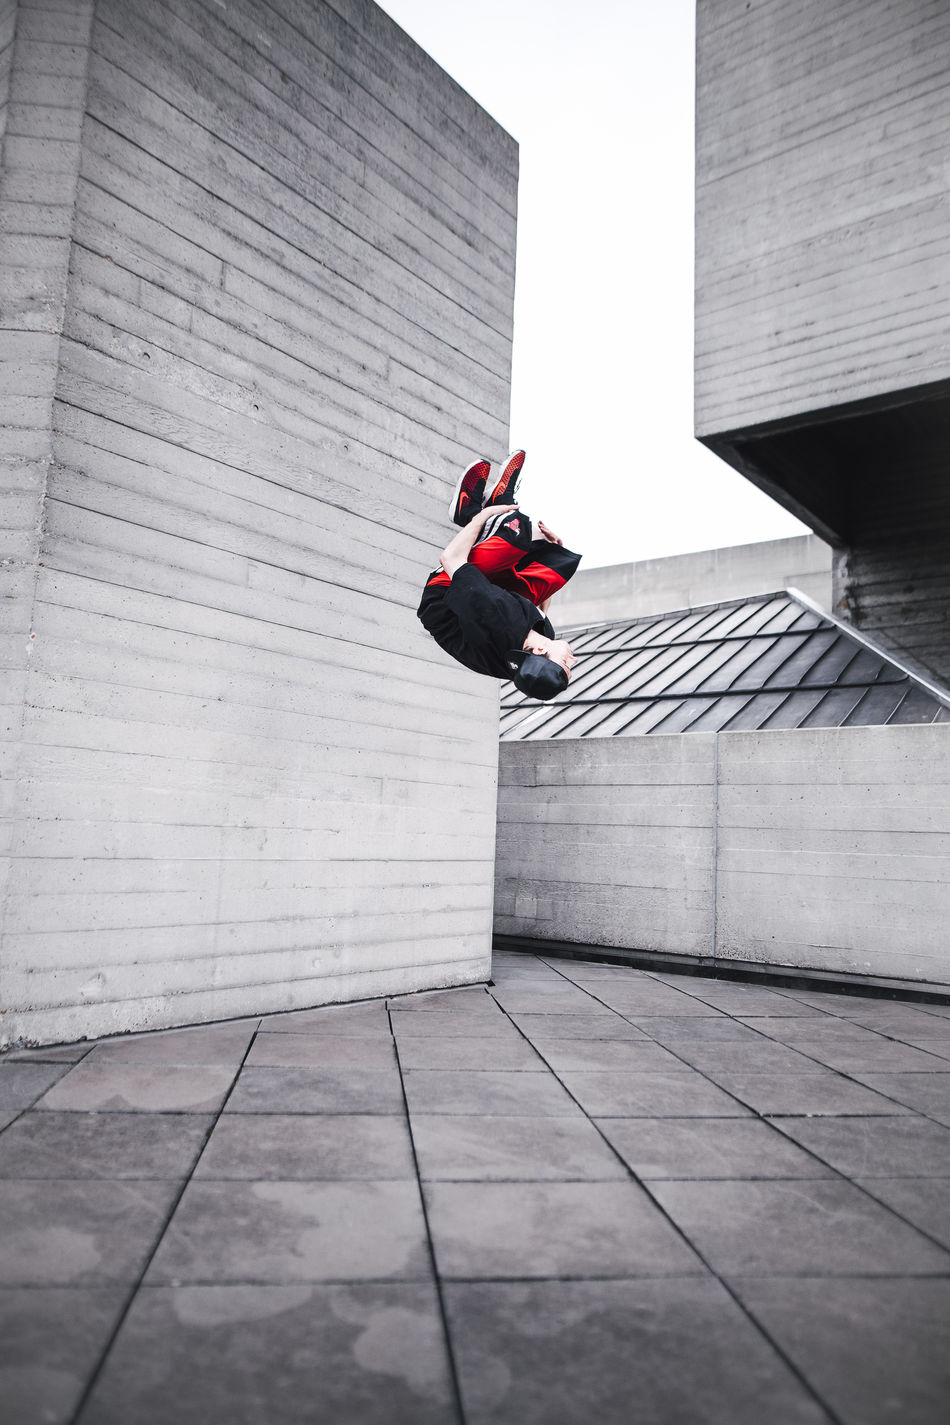 NT // Architecture Awesome Backflip Brutalism Brutalist Architecture Building Exterior Built Structure Check This Out City City Colors Cool Day Freerunning Jumping Leisure Activity London Motion One Person Outdoors Red SB Streetphotography Urban White